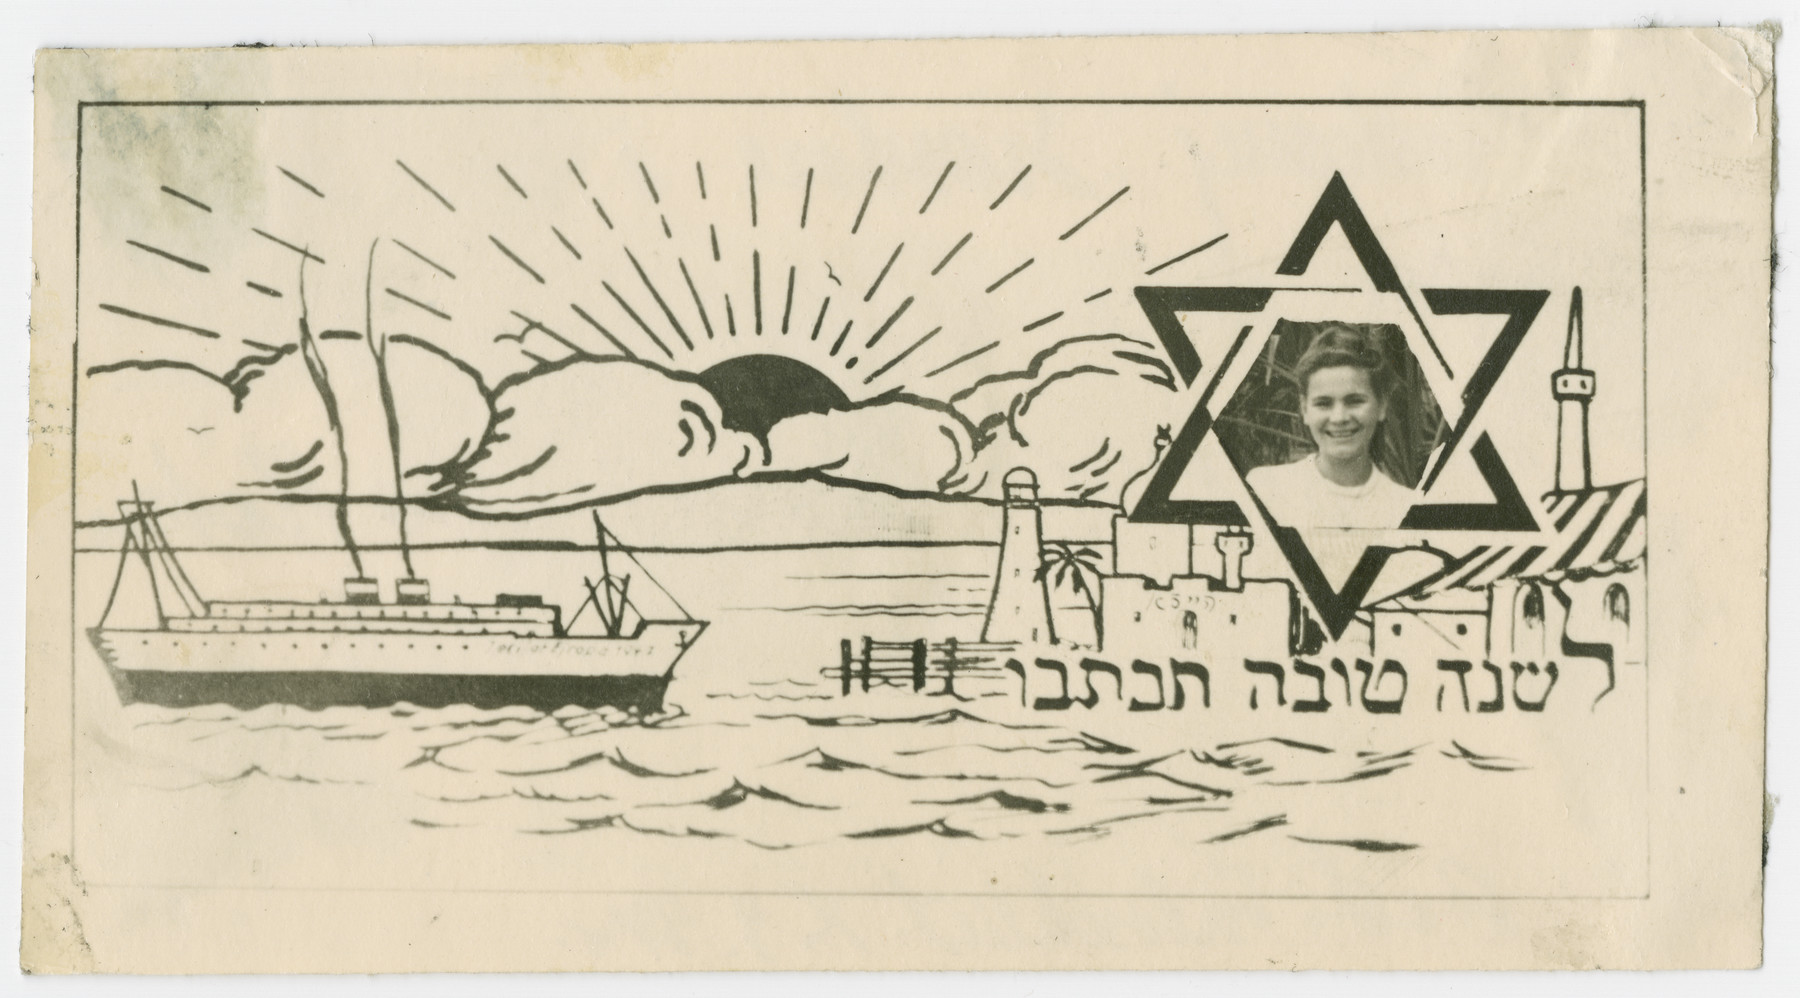 Jewish New Year's card sent by Rosza Herszlikowicz and decorated with her photograph and an illustration of a boat going to Palestine.